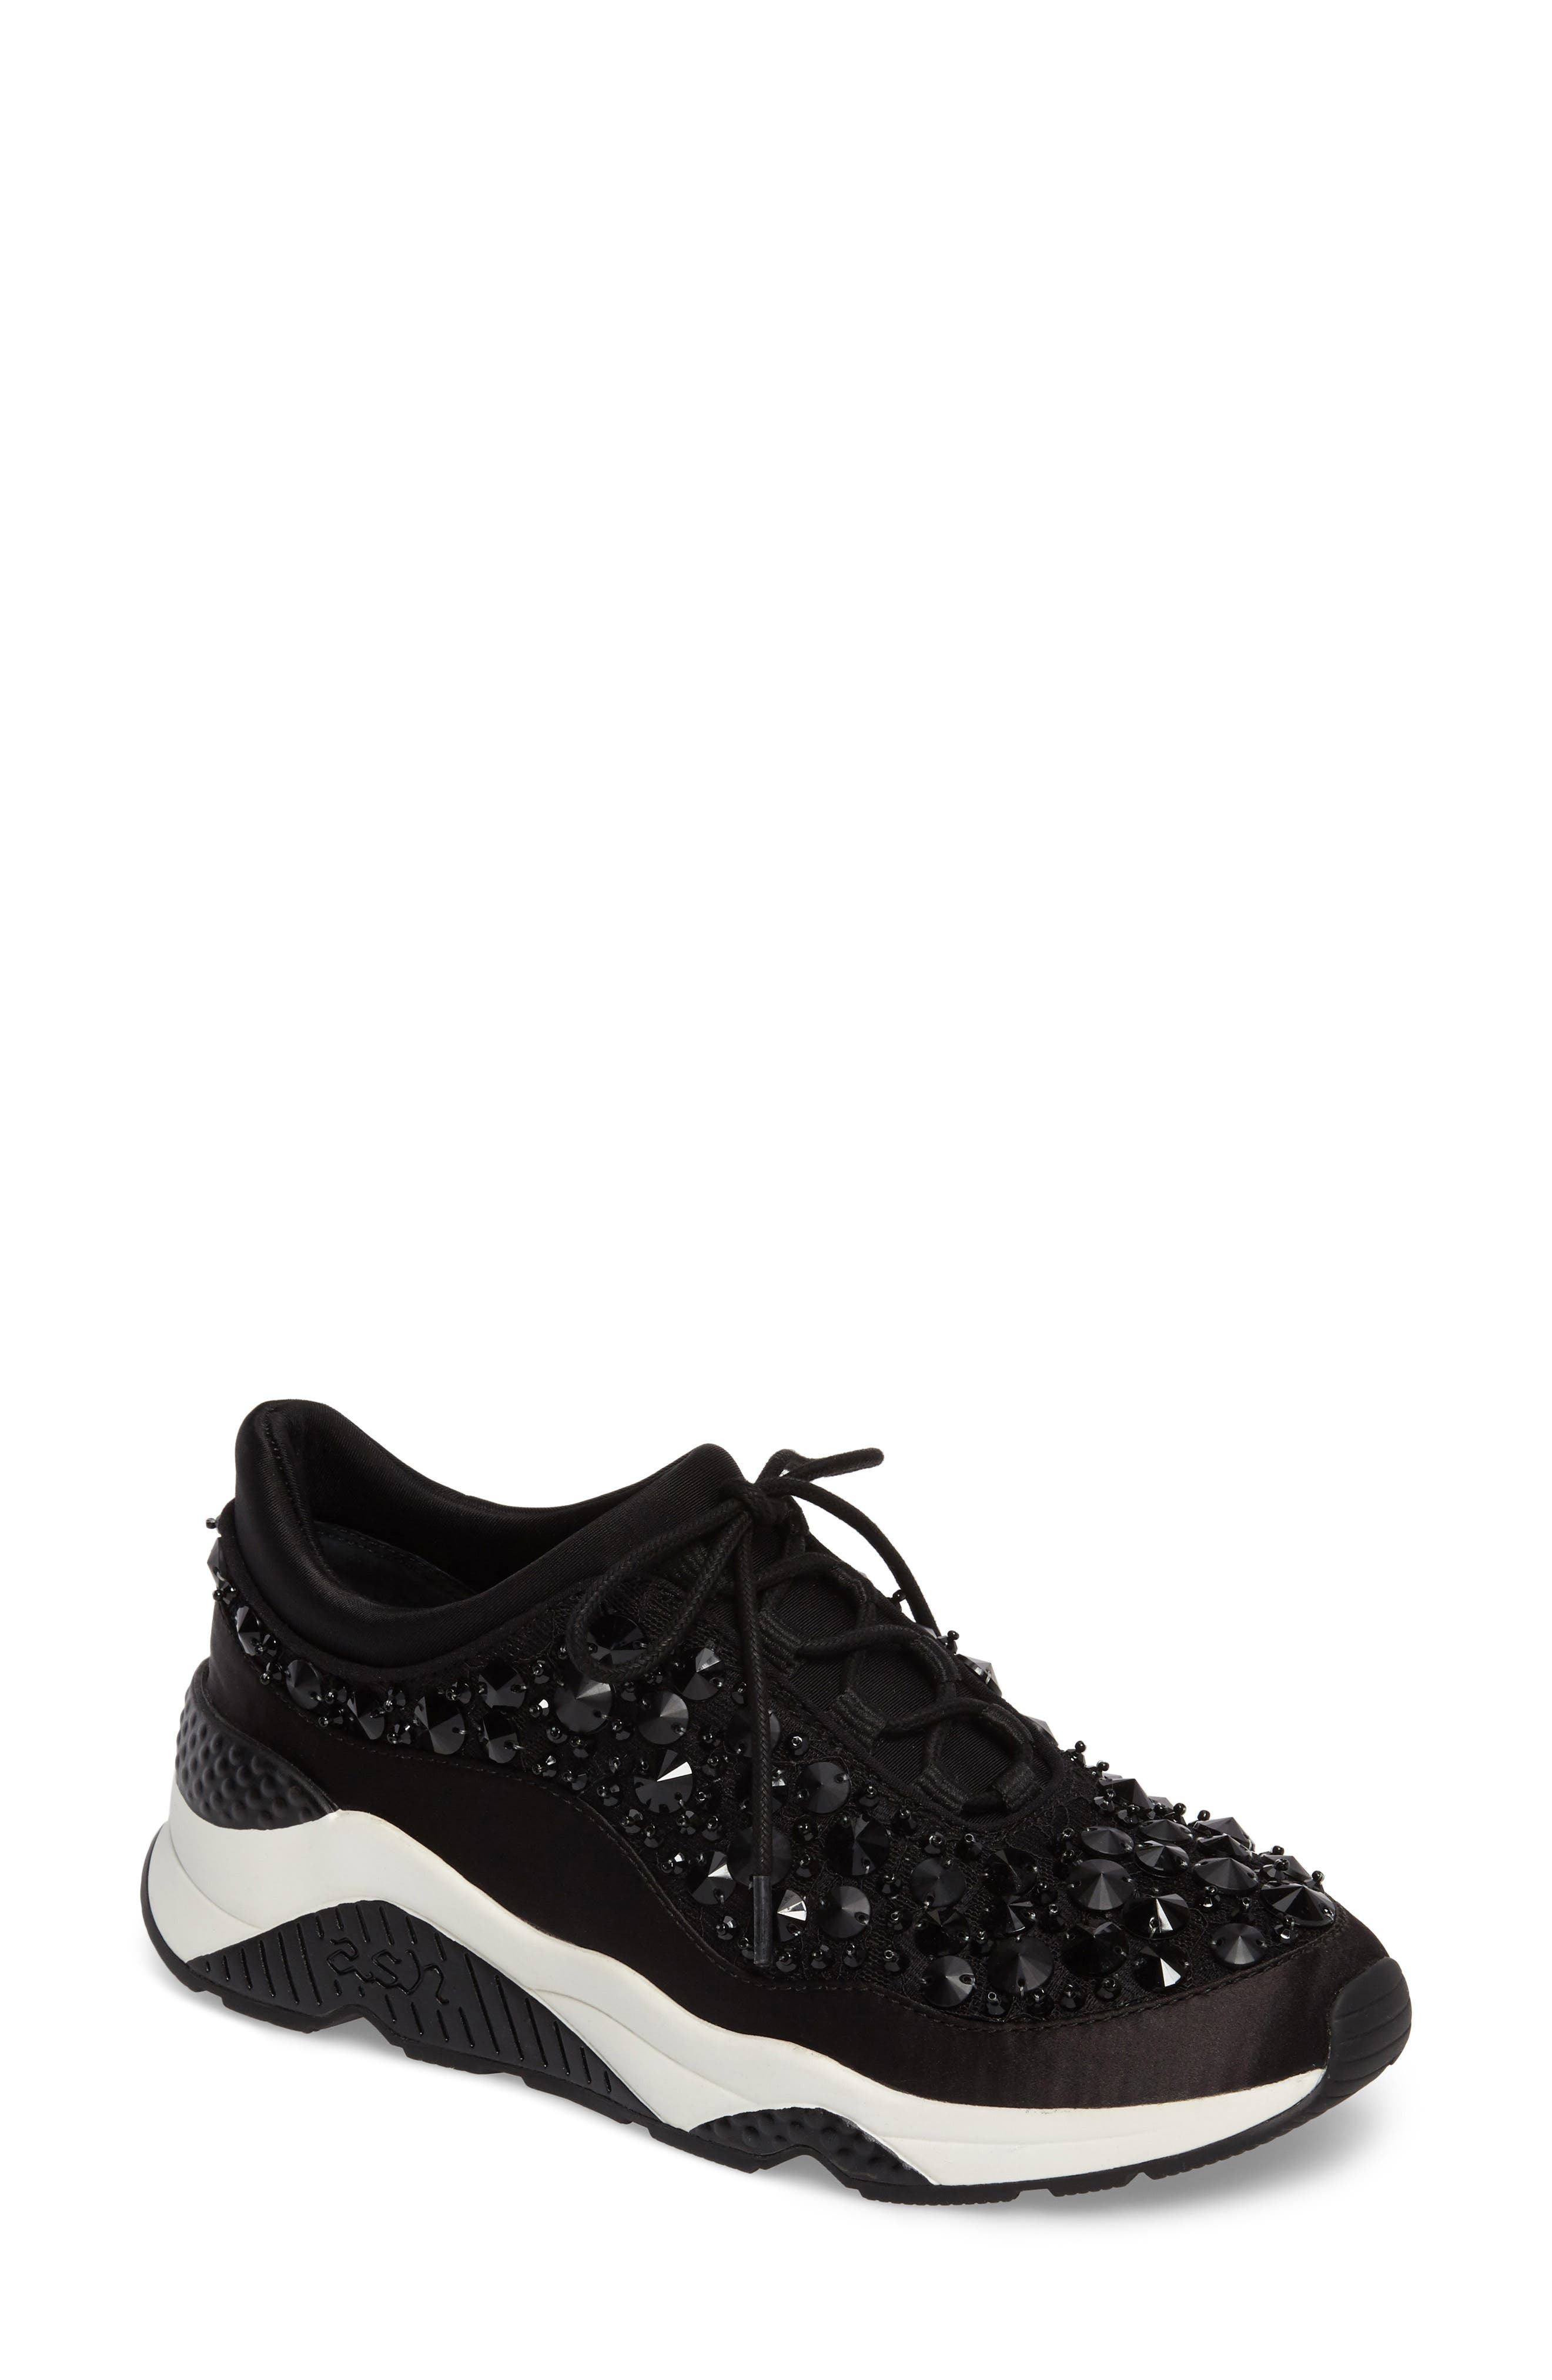 Muse Beads Sneaker,                         Main,                         color, 001